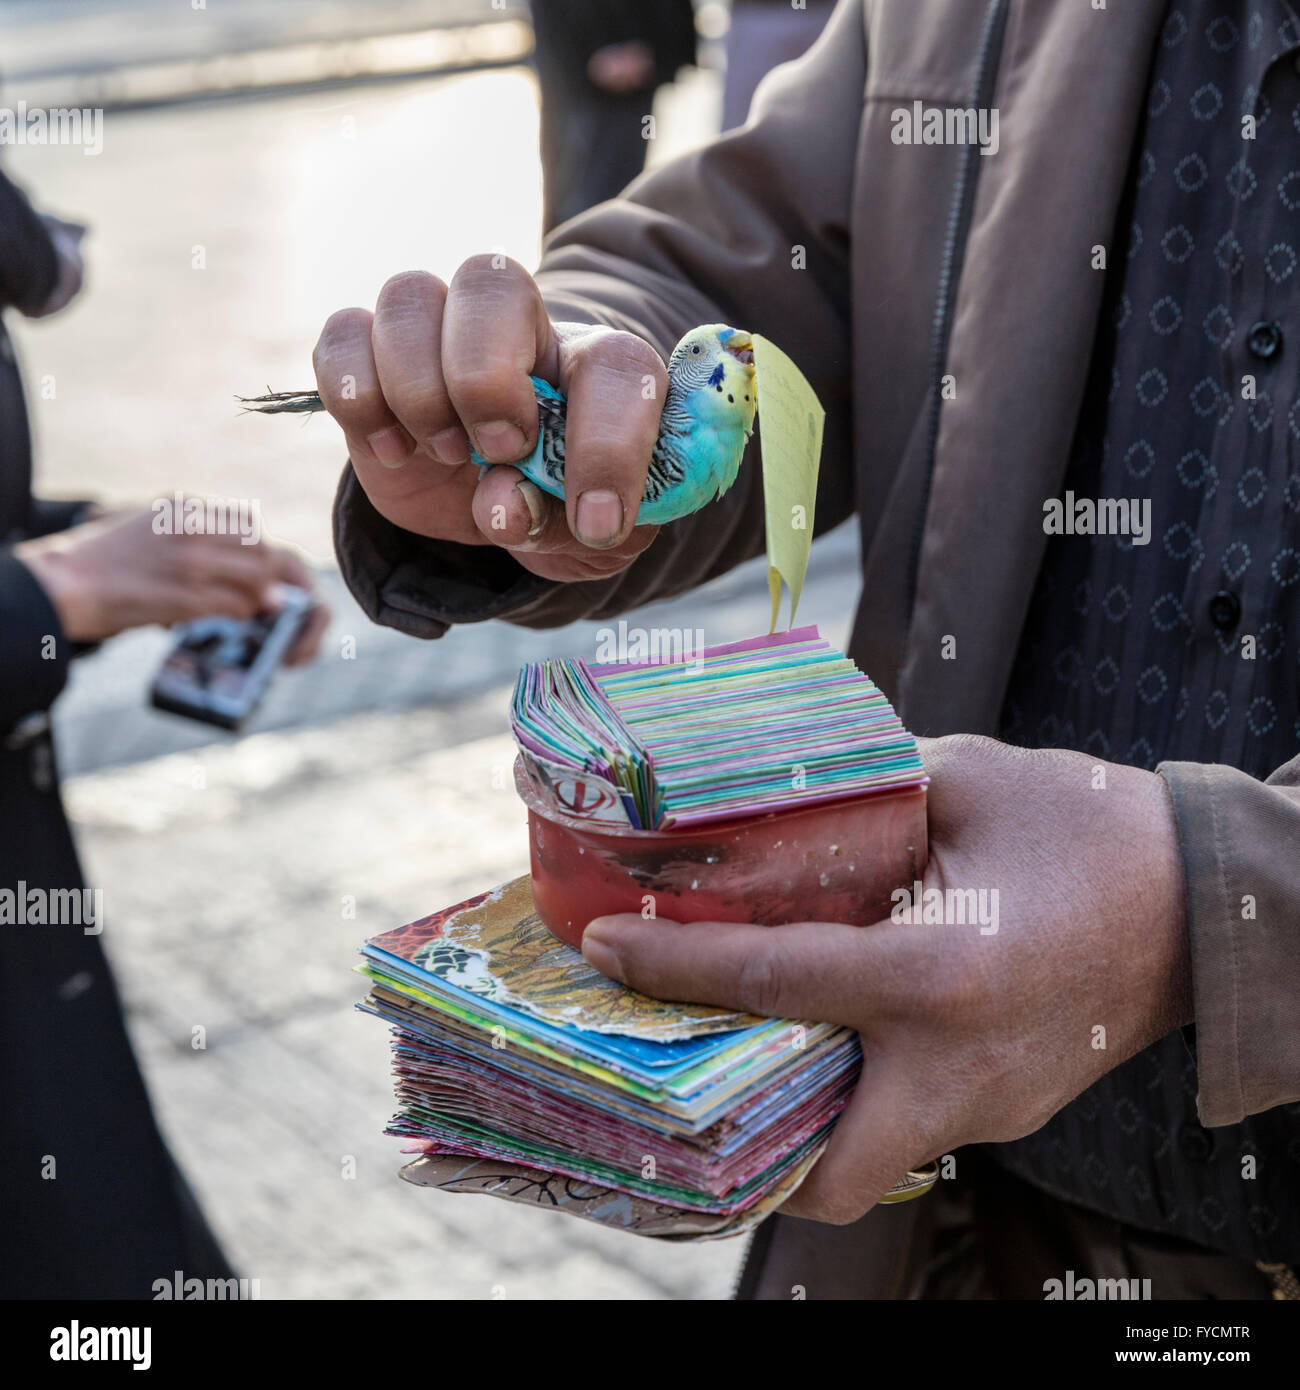 Handler & trained parakeet which is pulling a page with verse of Hafez's poetry from a stack outside Hafez's - Stock Image